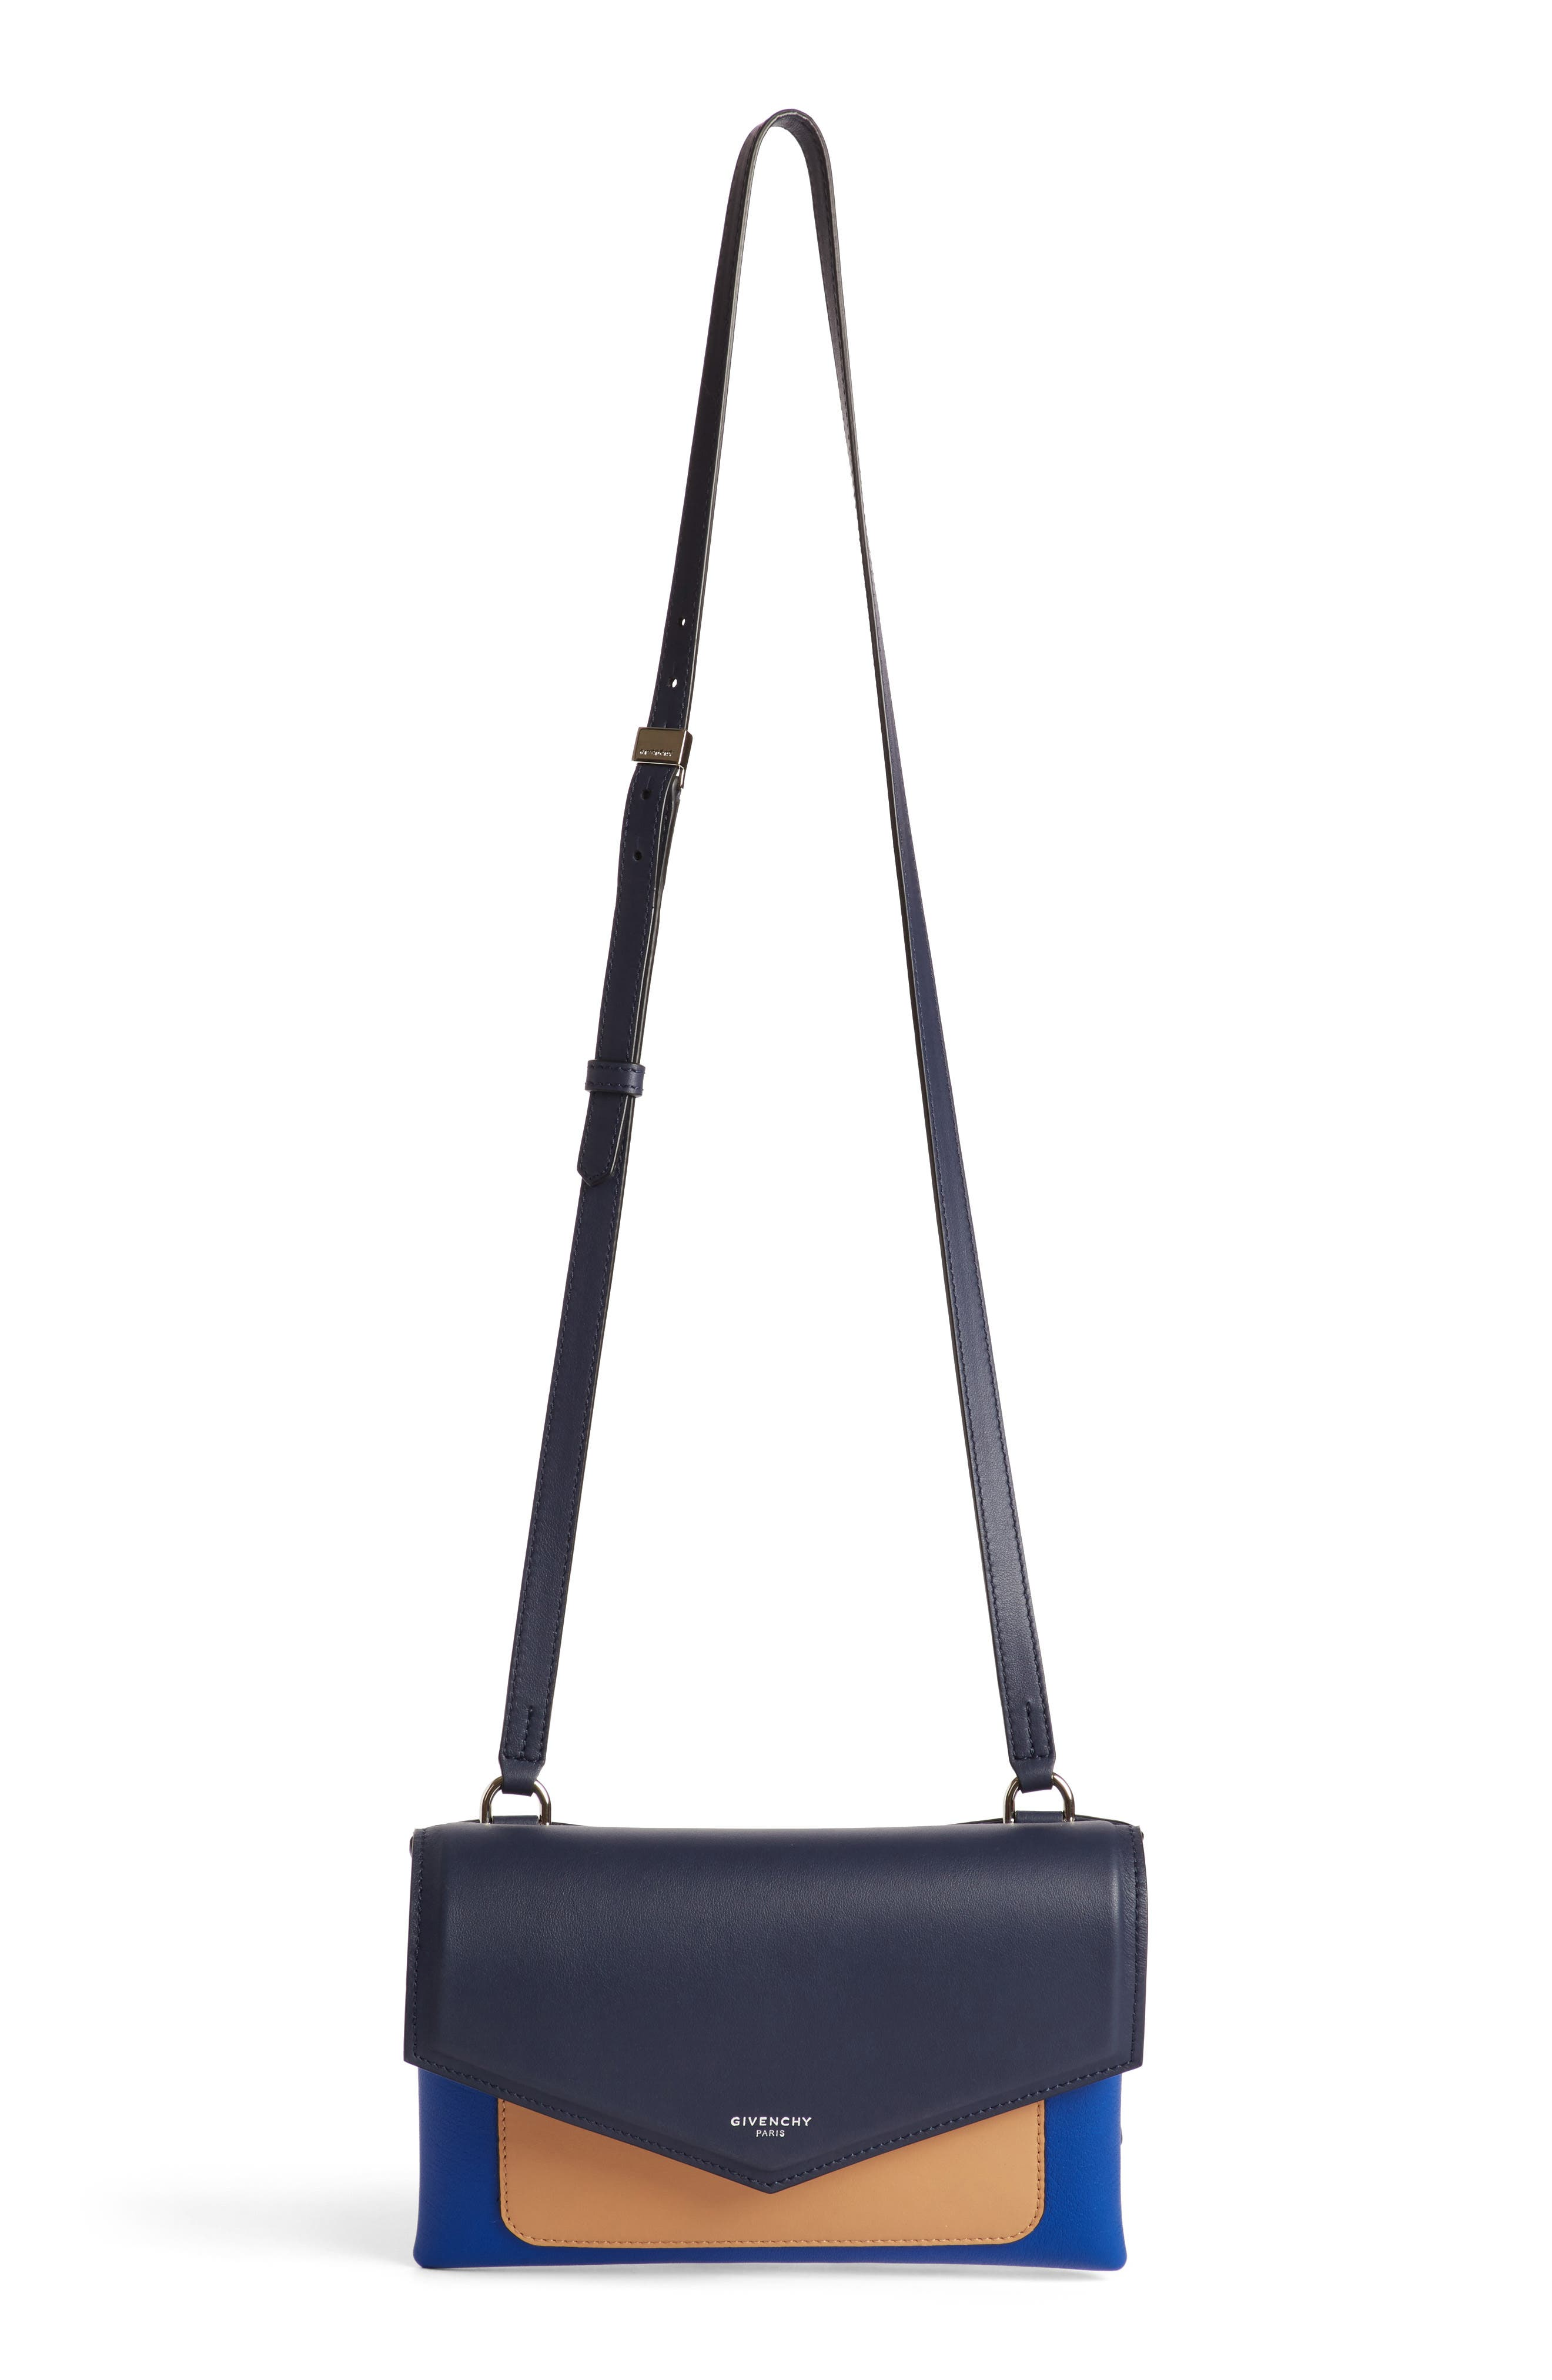 Givenchy Duetto Tricolor Leather Flap Crossbody Bag